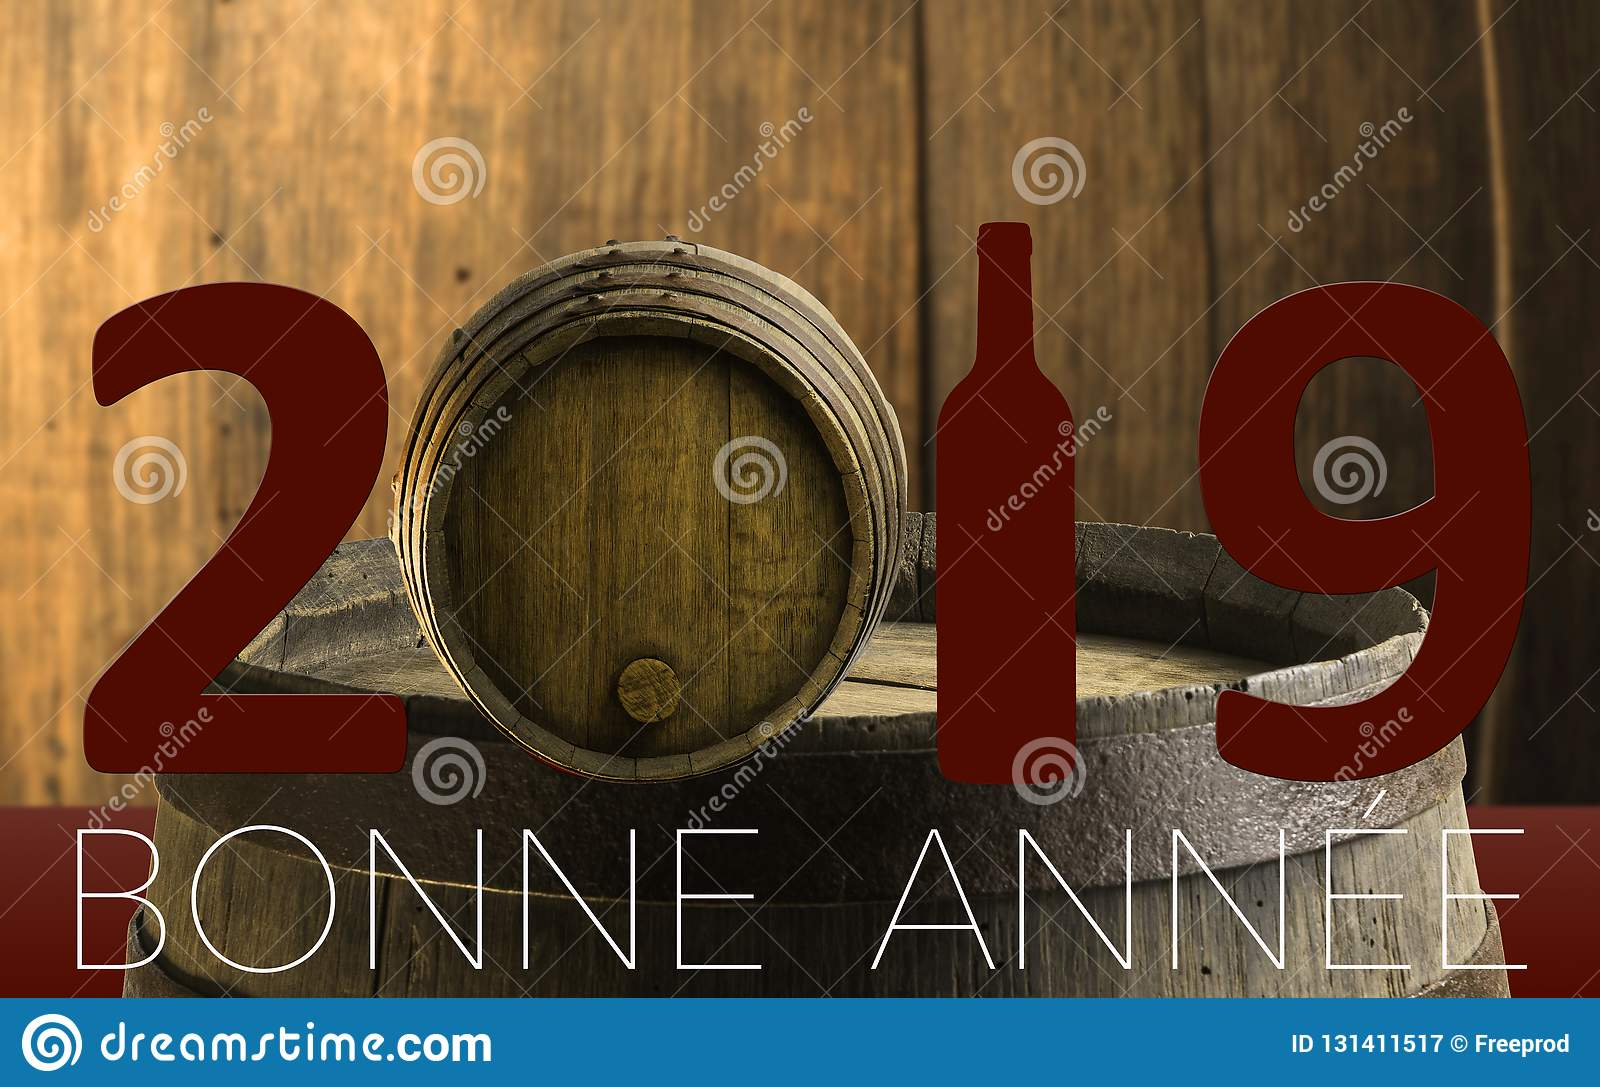 new year celebration with wine 2019